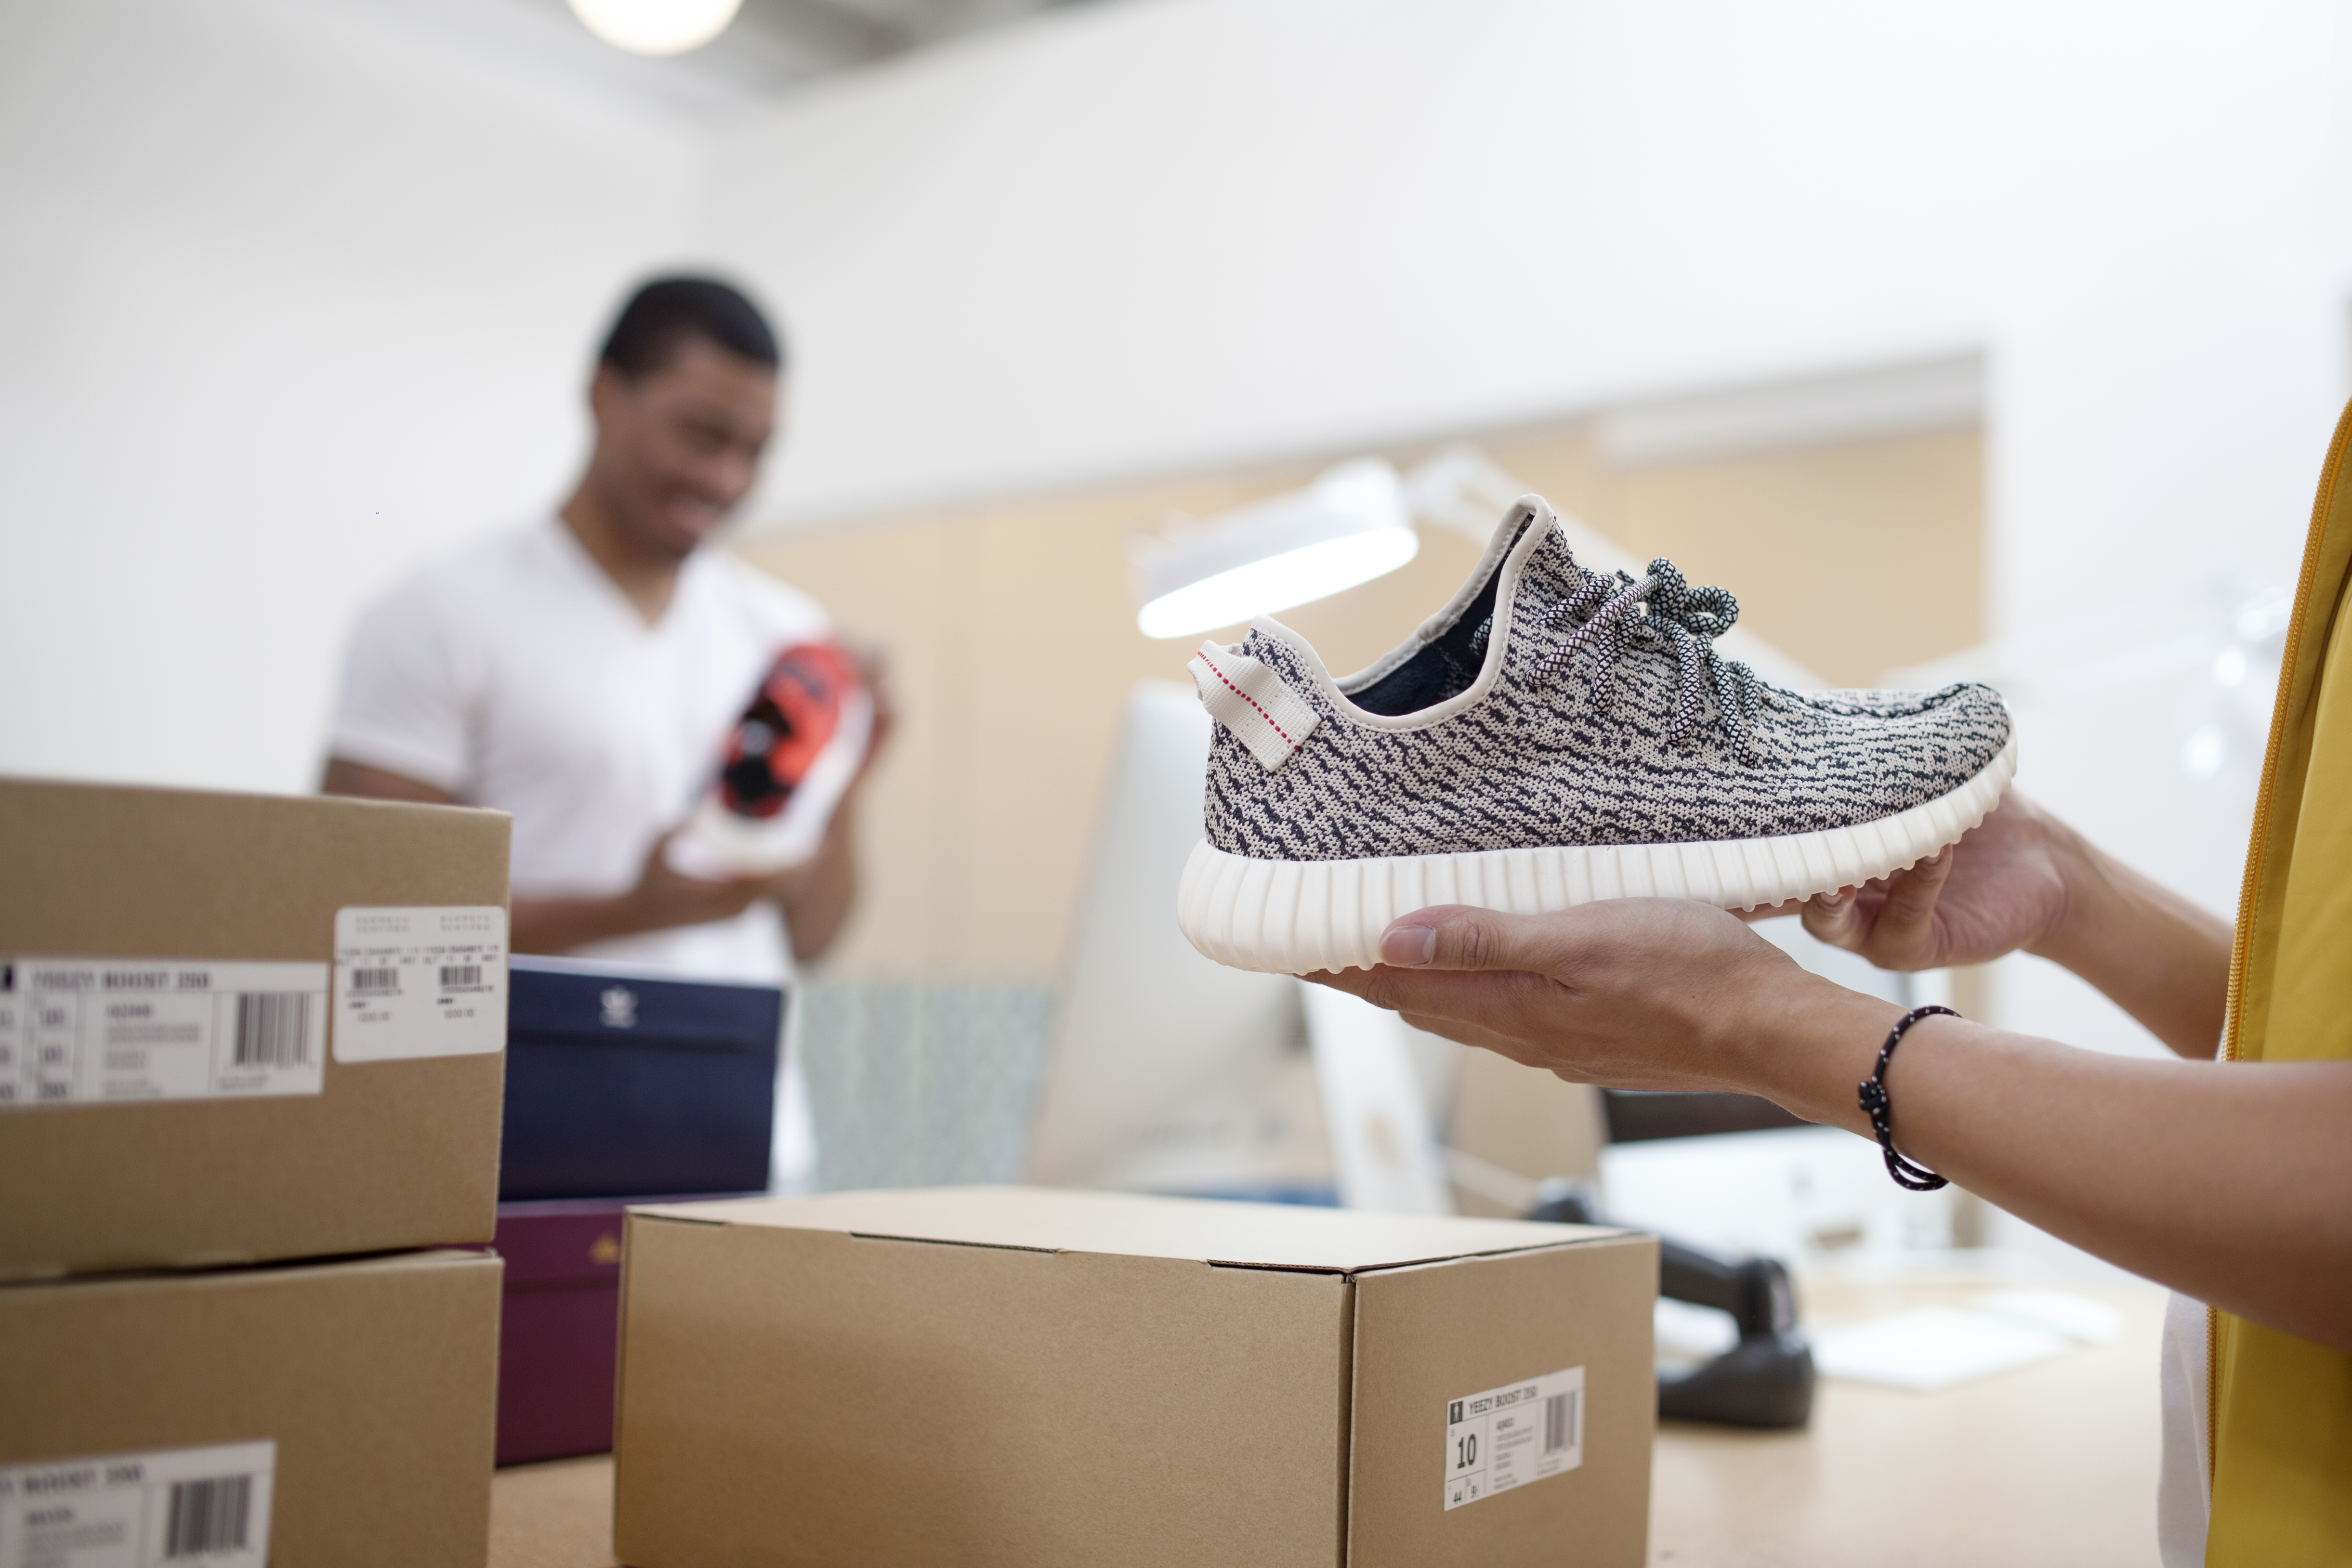 GOAT raises $5 million to help sneakerheads buy and sell